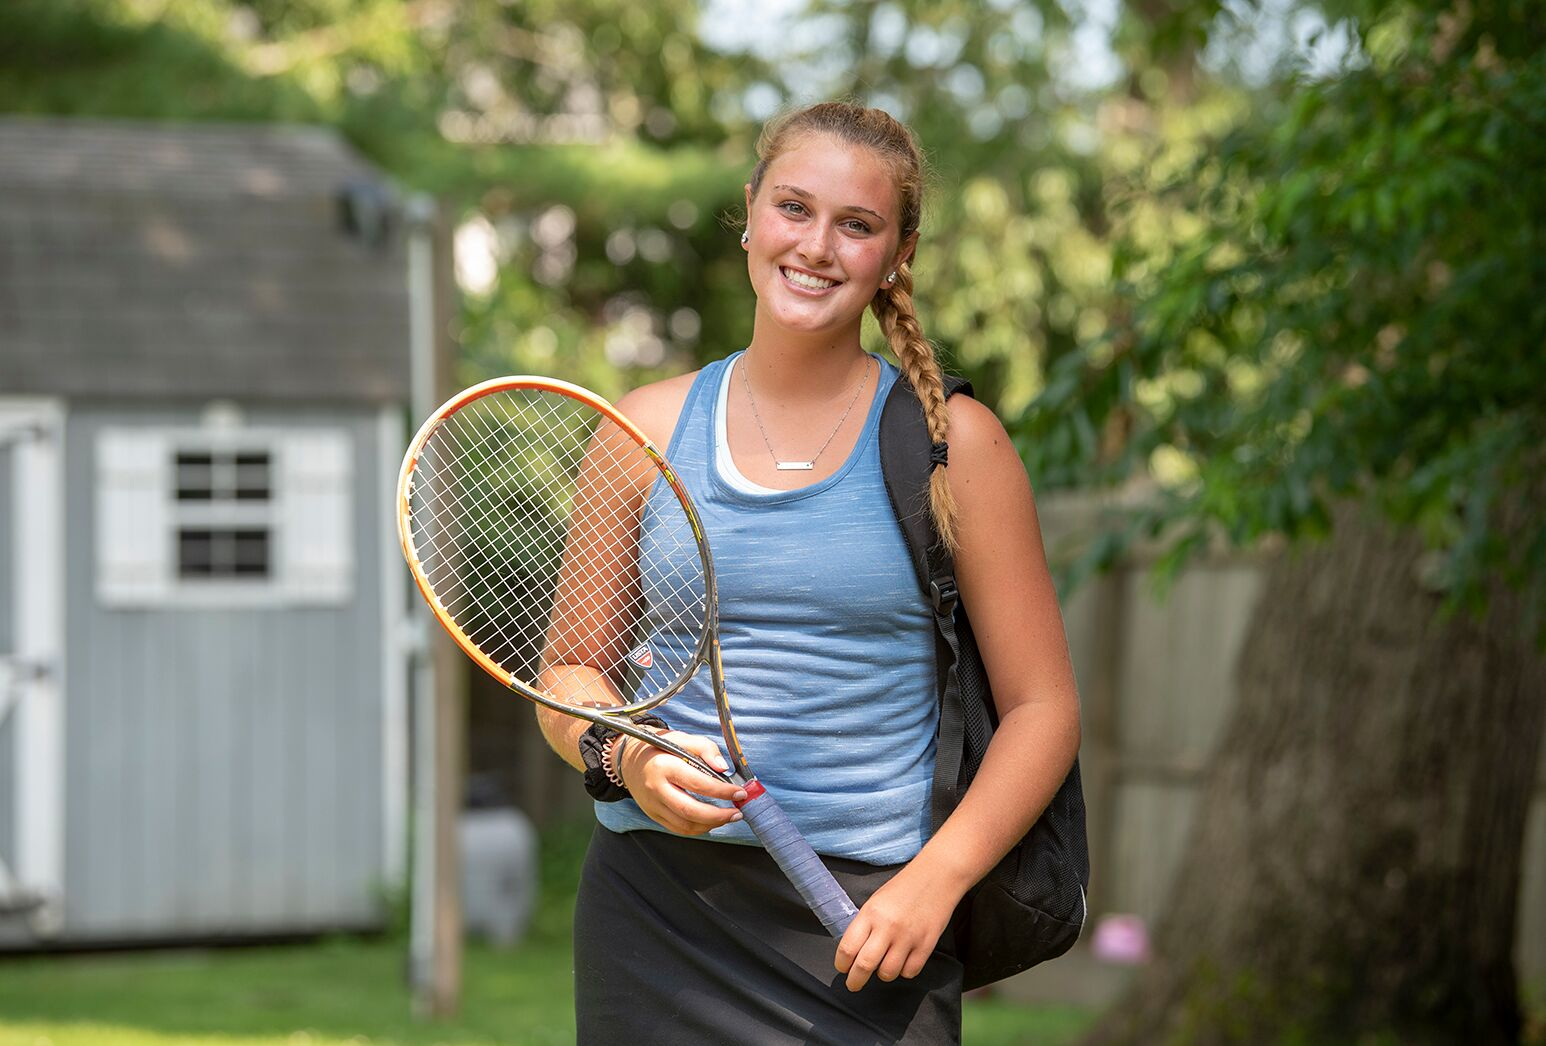 Teenage girl with a long blonde braid in a blue sleeveless top, holding a tennis racket.